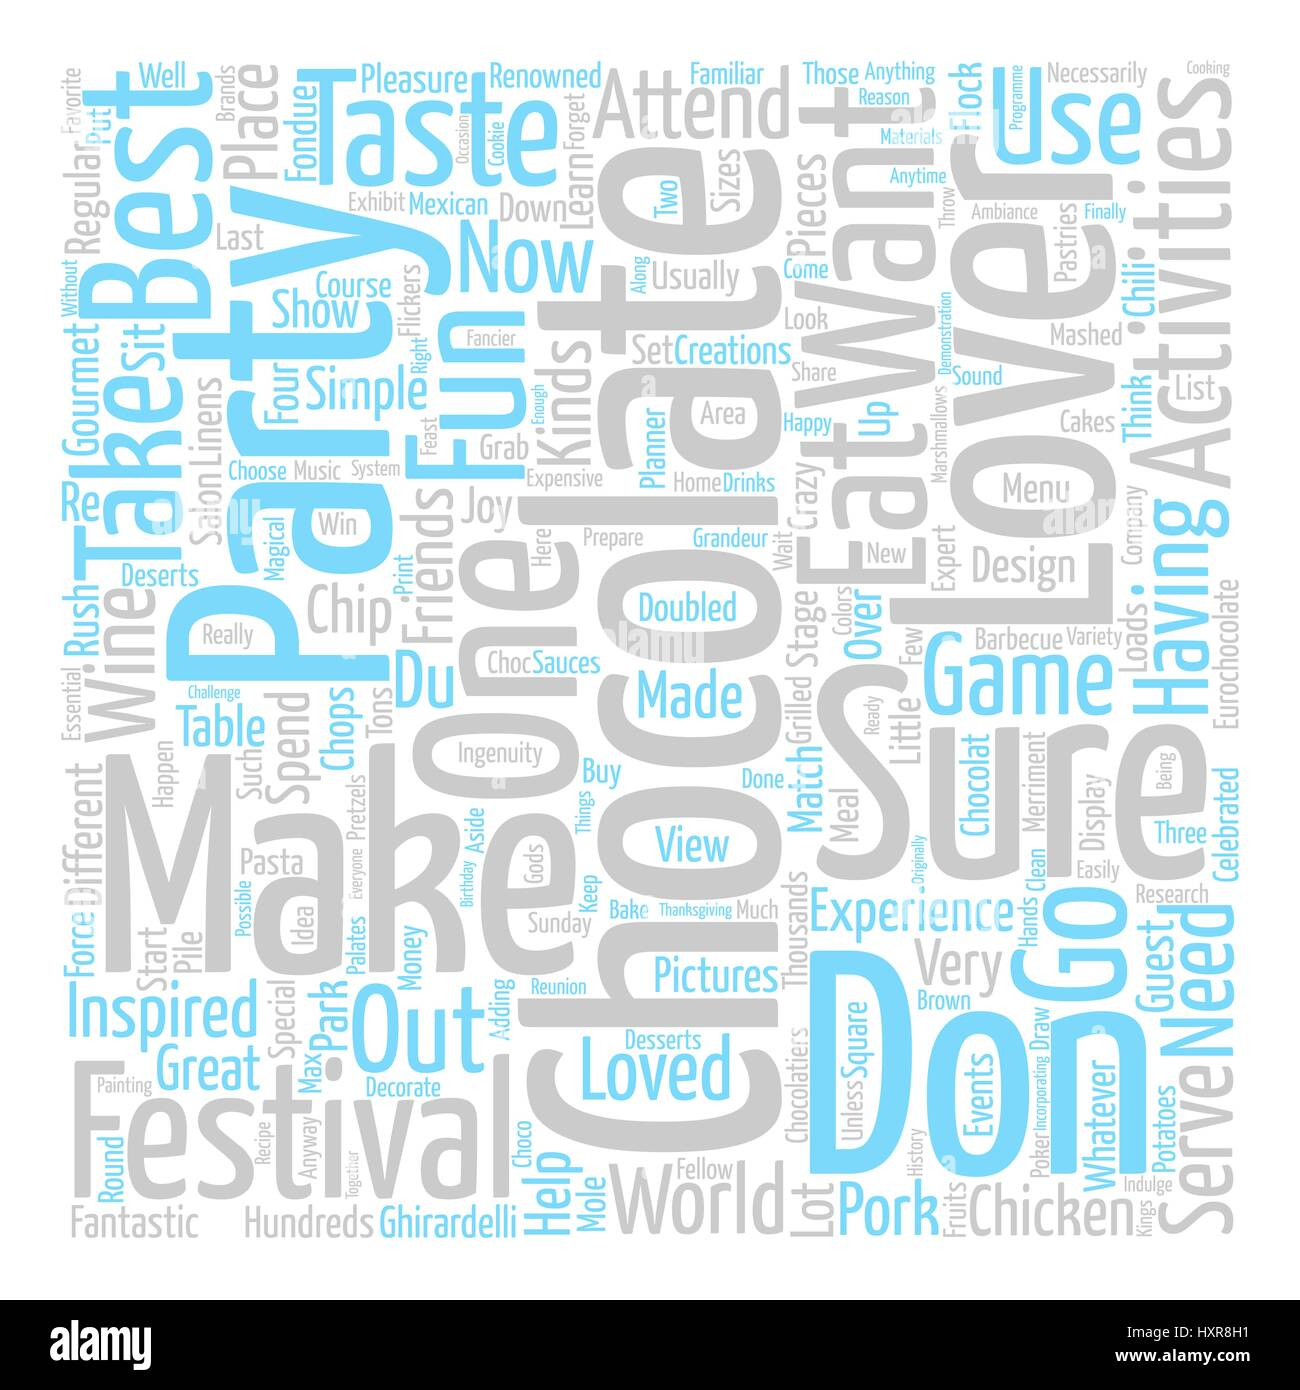 Awesome Gift Ideas For The Teenage Dude Word Cloud Concept Text Background Stock Vector